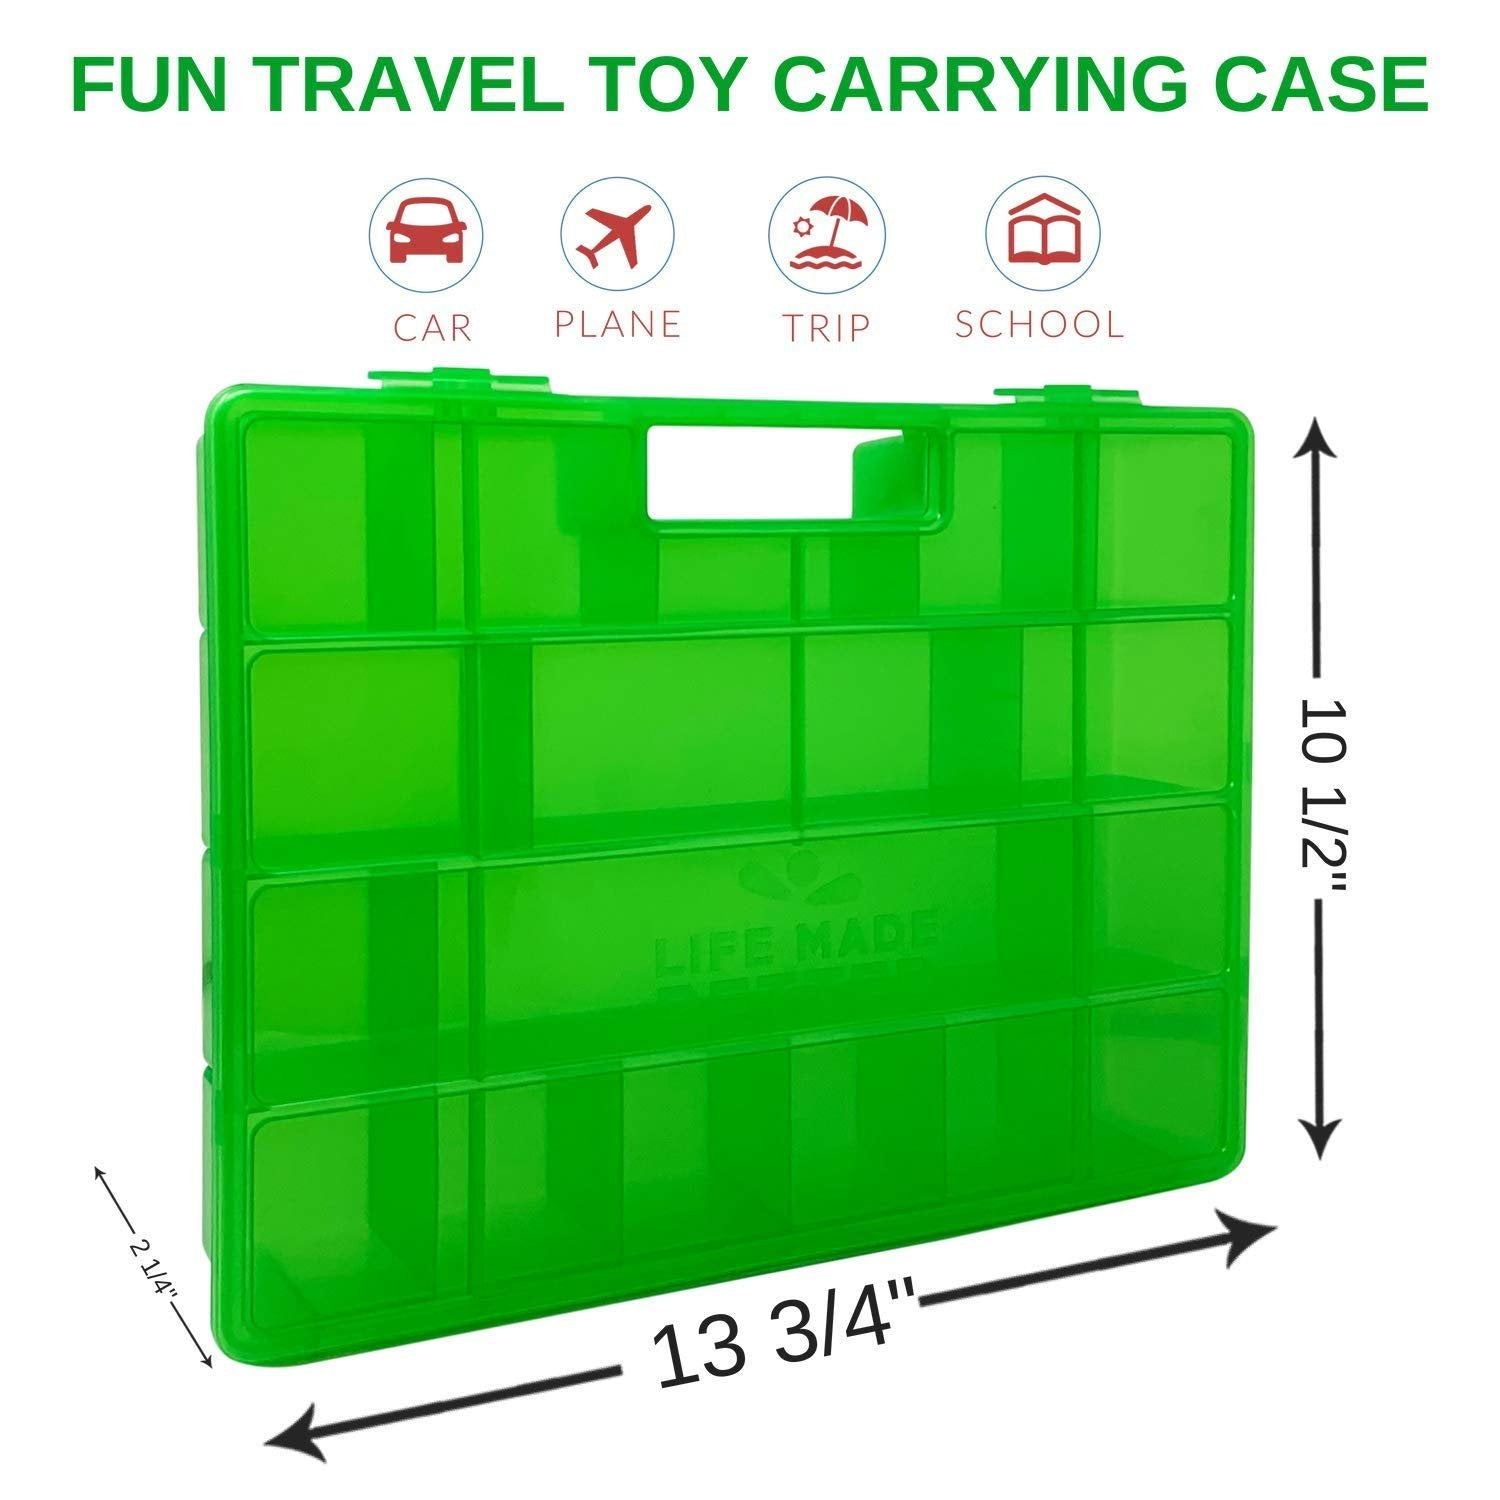 Life Made Better Light Weight Toy Organizer Case for Kids, Compatible with Octonauts Green Box to Store & Protect Figurines and Playset Accessories, Made by LMB